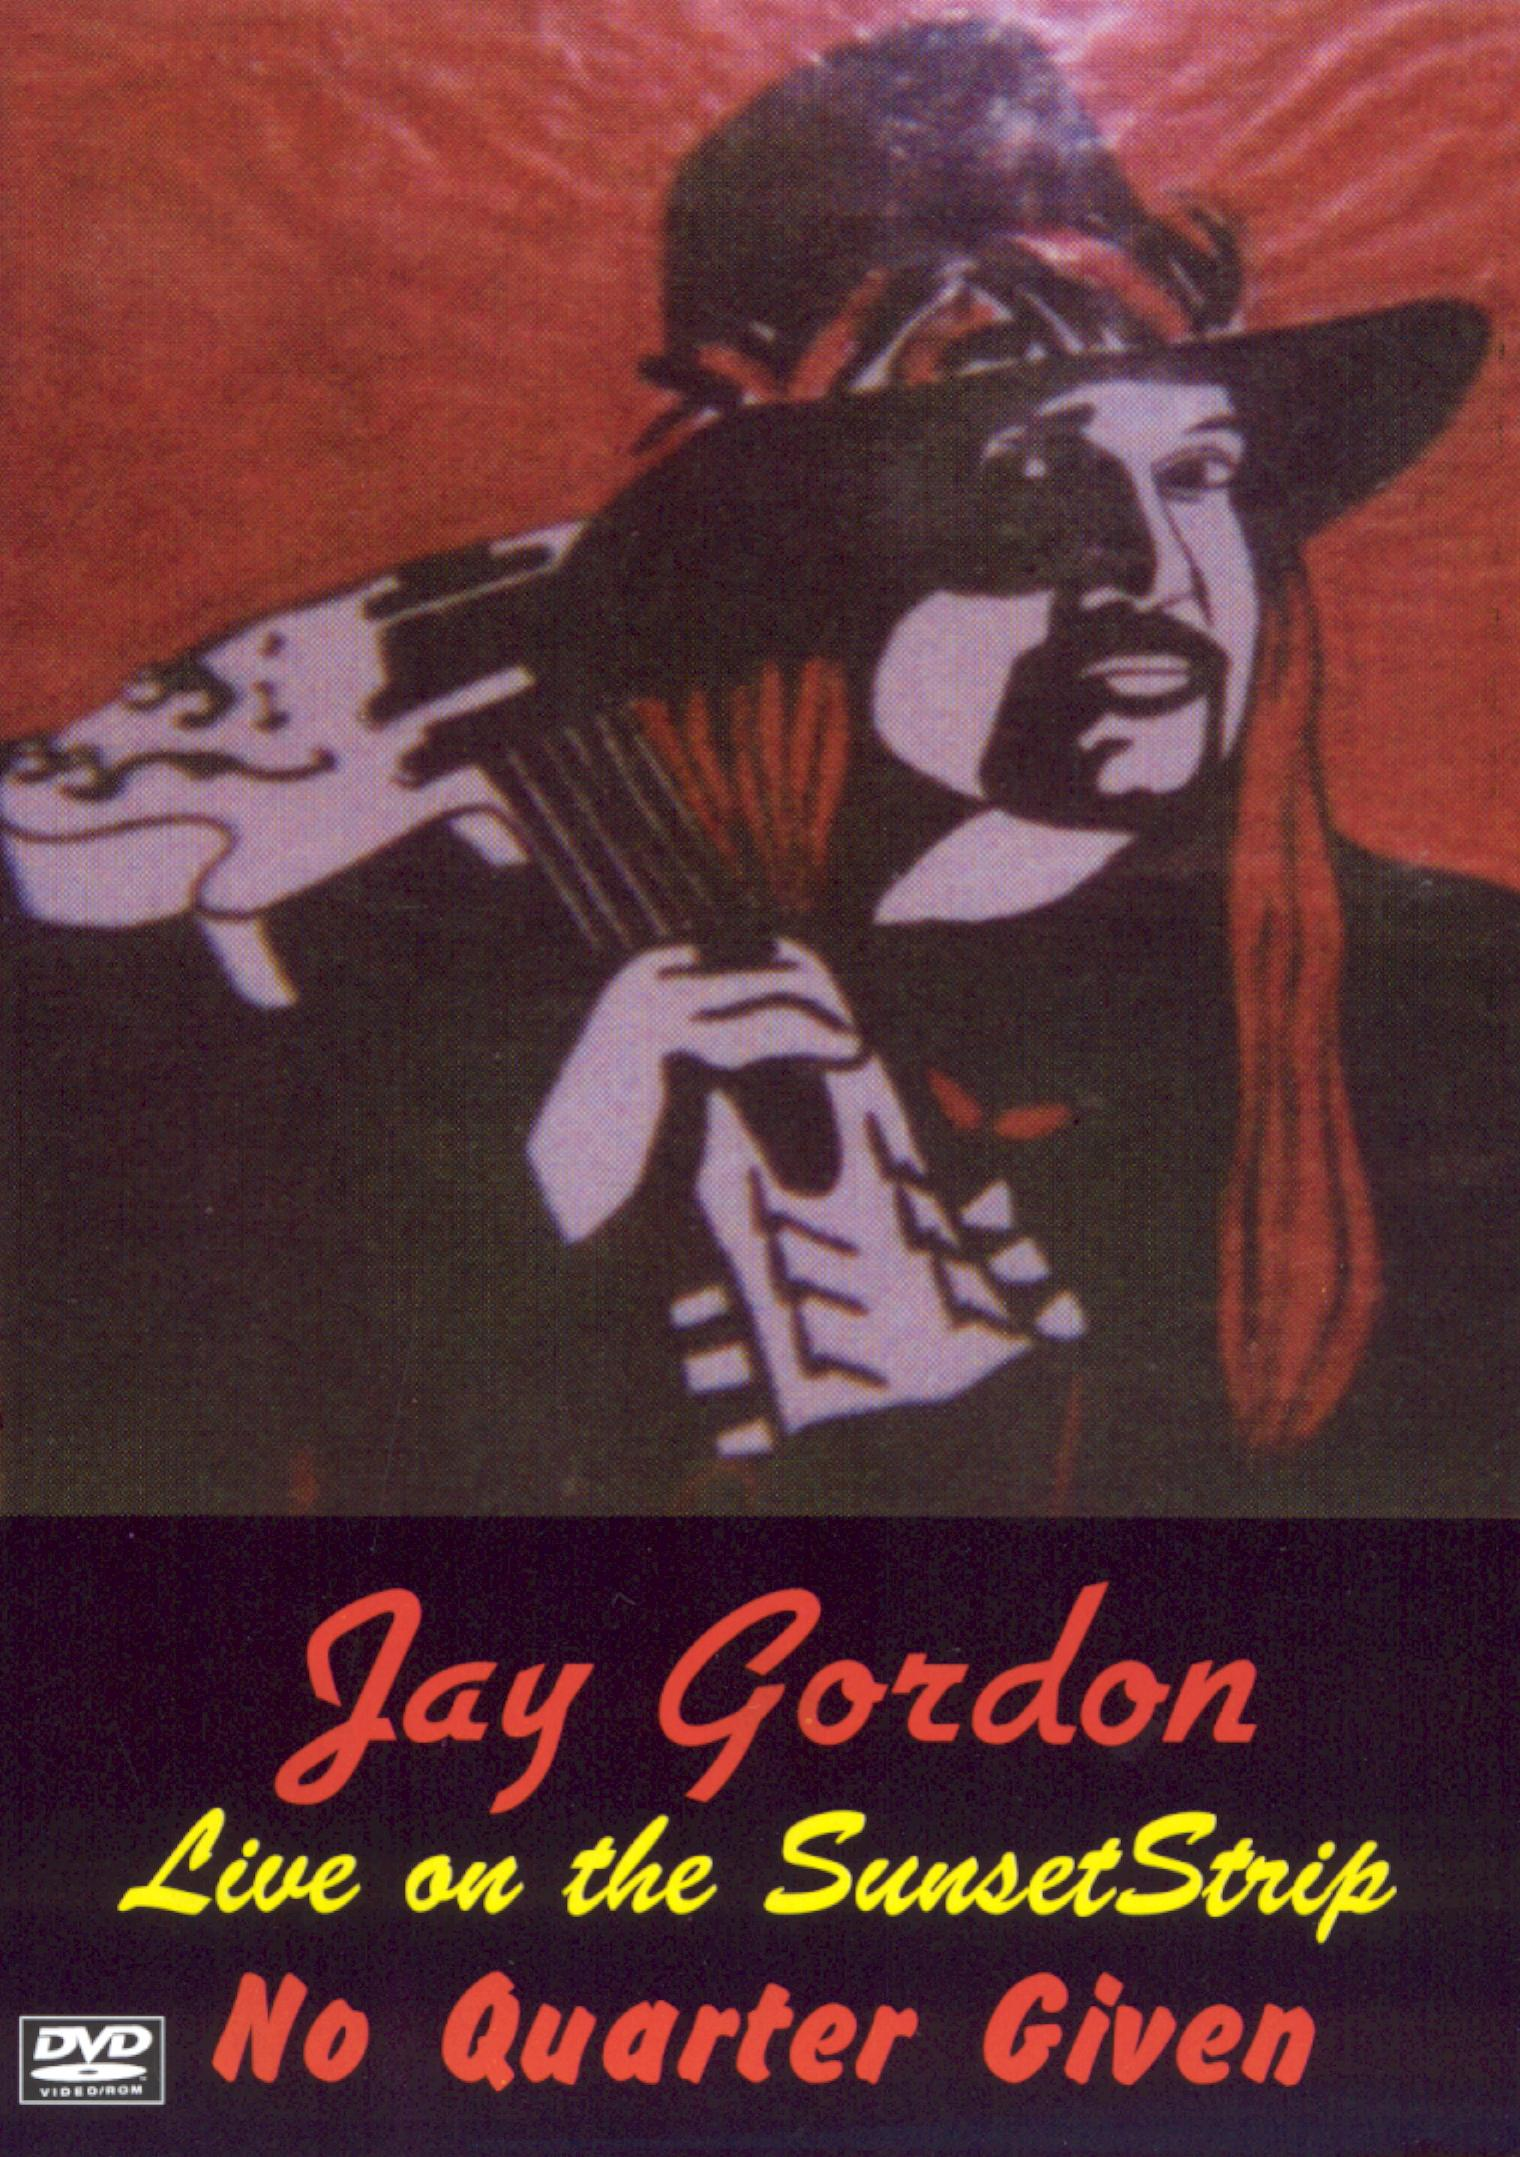 Jay Gordon: Live On the Sunset Strip - No Quarter Given